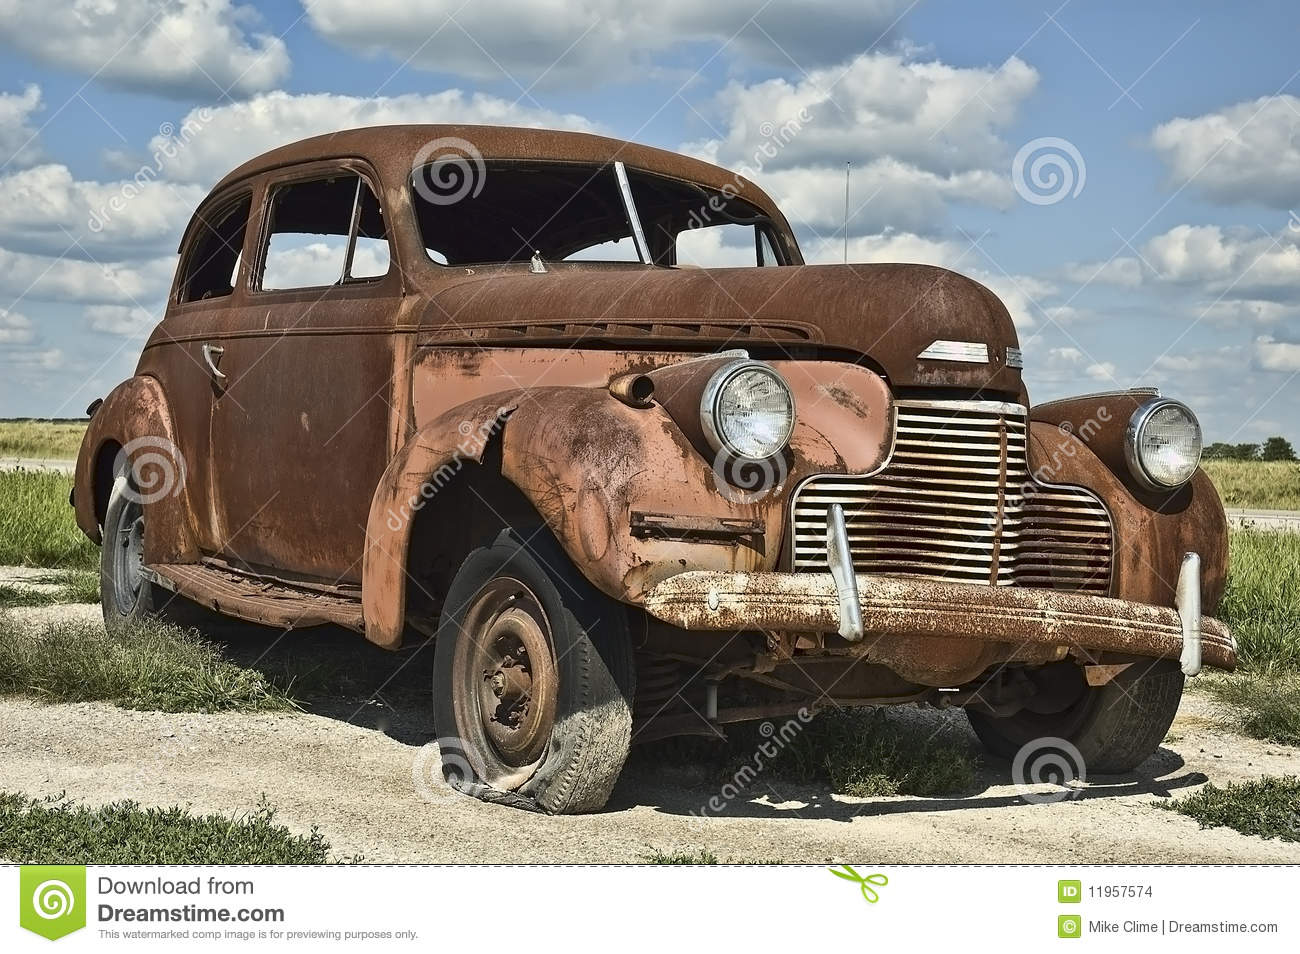 antique rusty old car stock photo image of junkyard 11957574. Black Bedroom Furniture Sets. Home Design Ideas